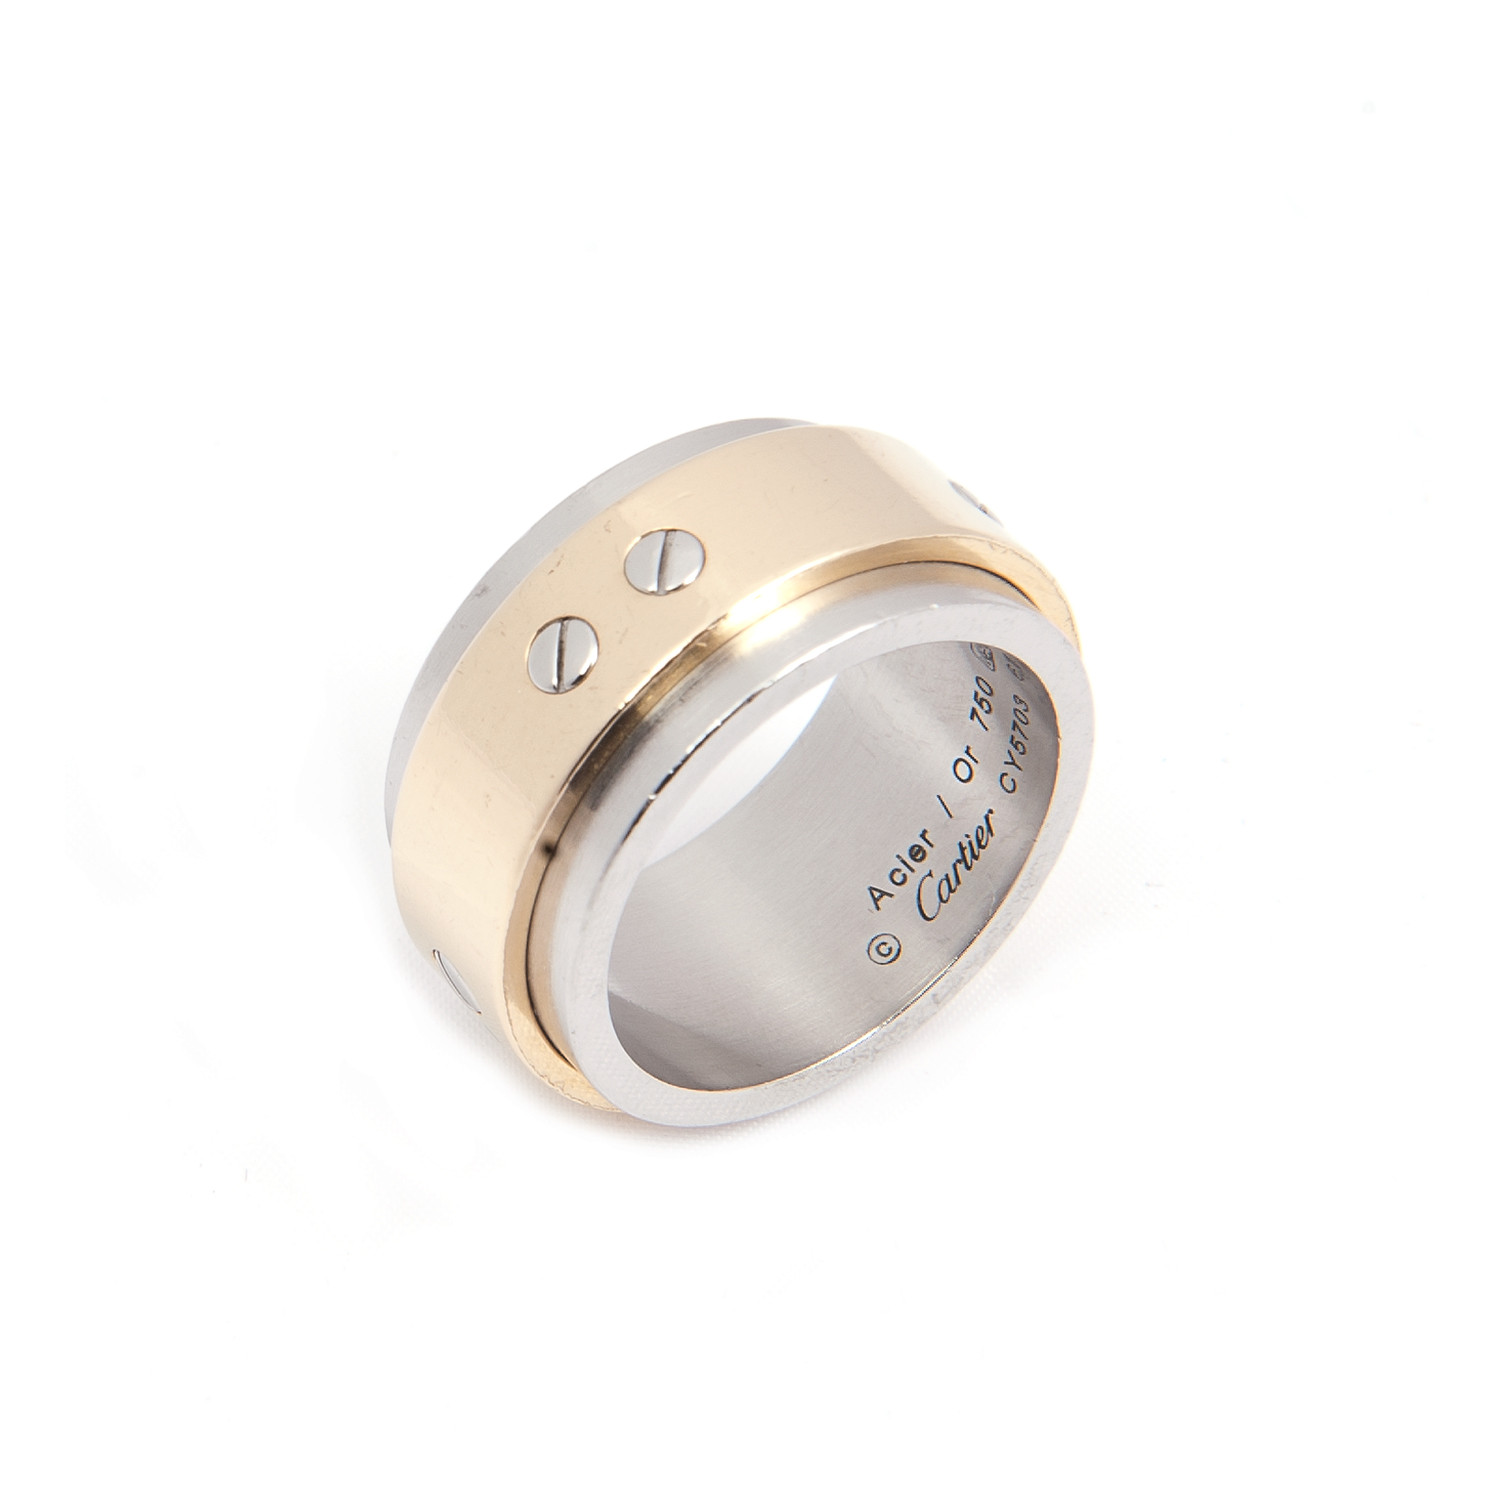 Cartier Mens Love Ring in 18k Yellow Gold Steel Size 10